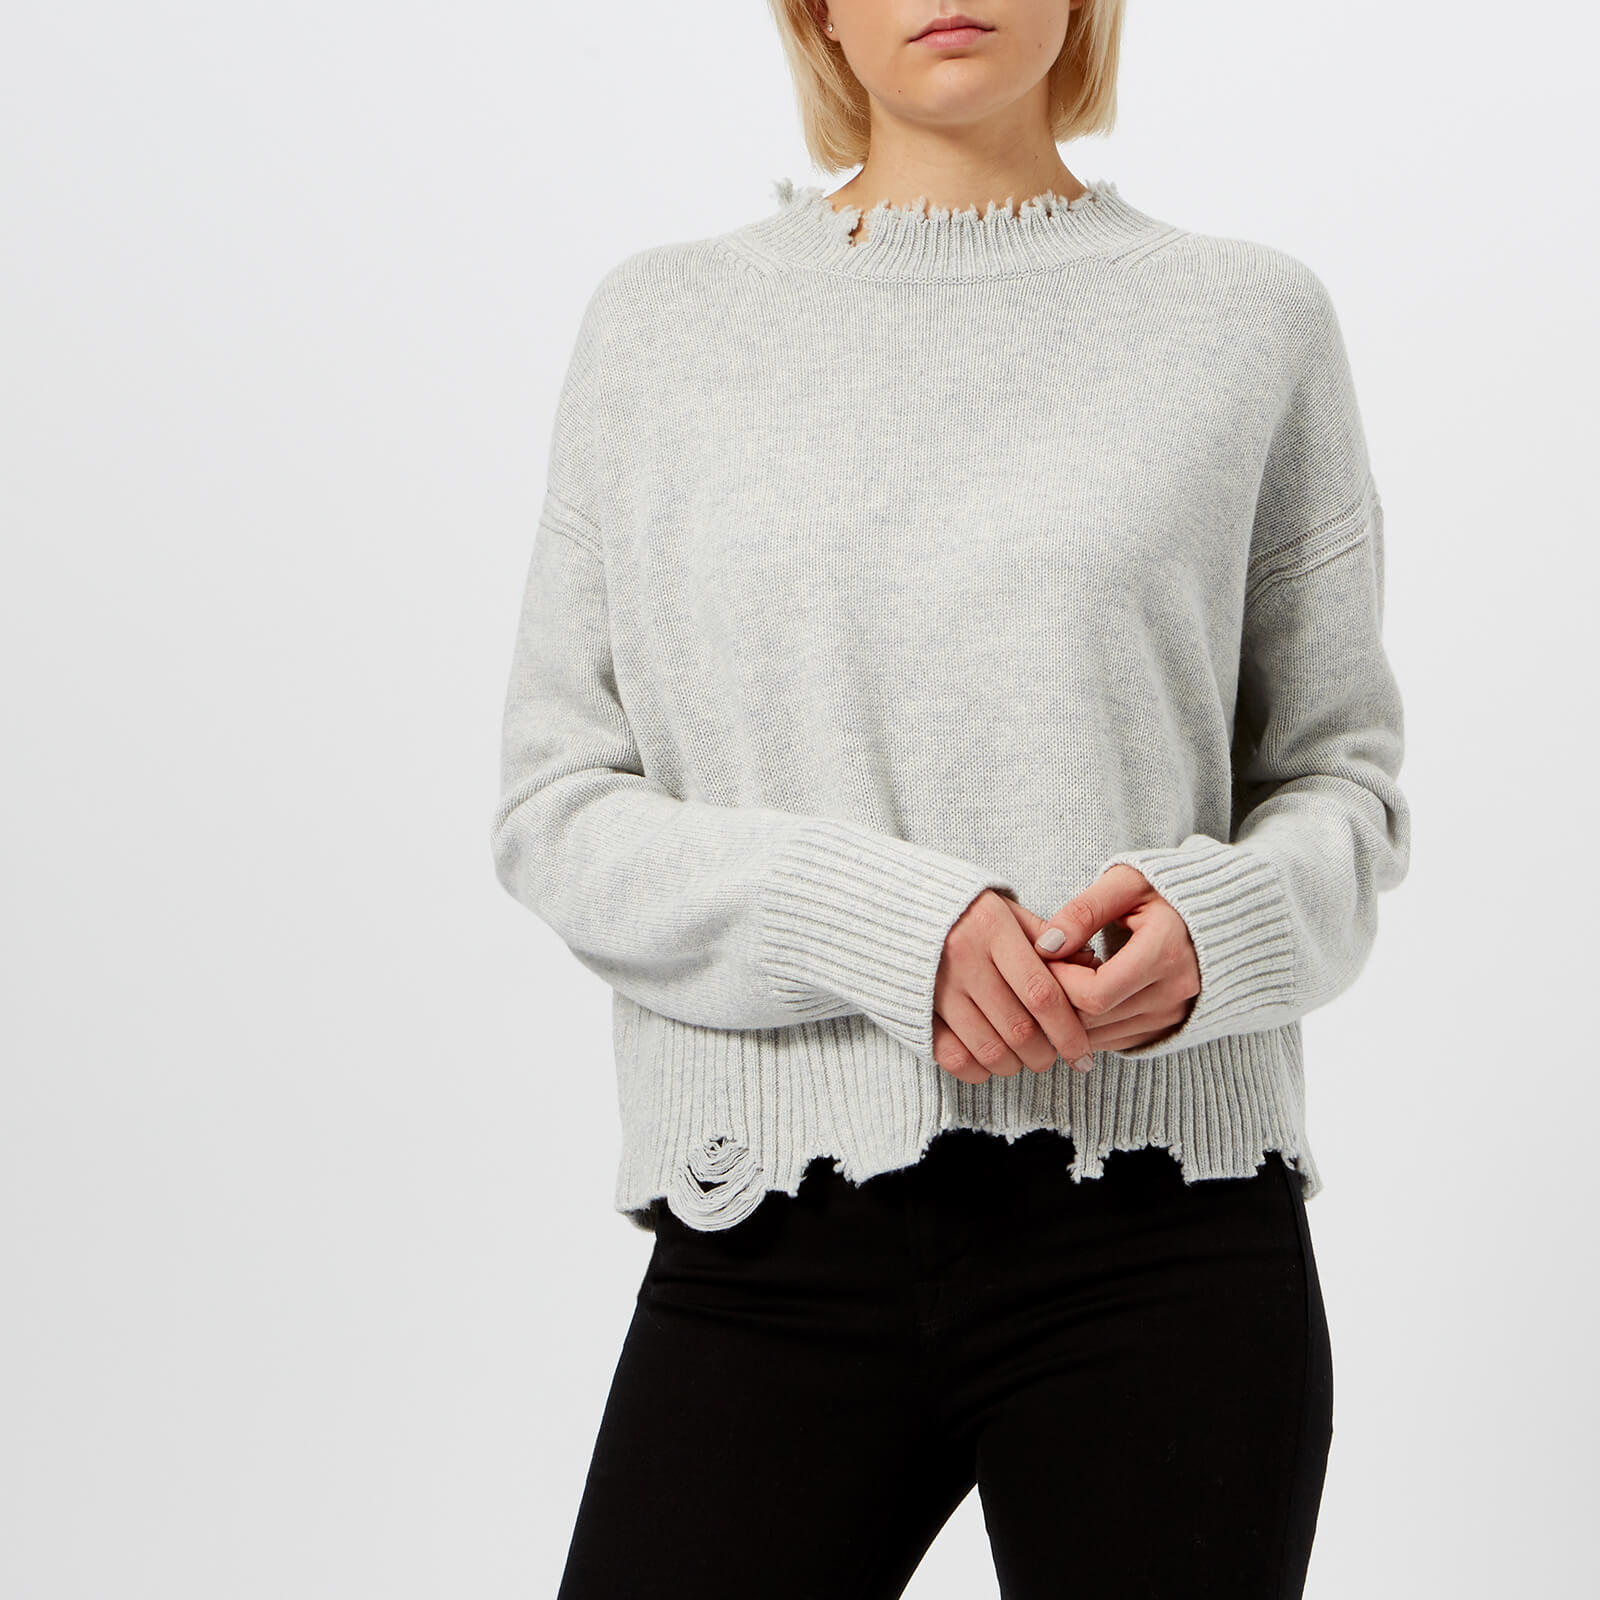 c02e22b381b1f Helmut Lang Women s Distressed Crew Neck Jumper - Snowstorm - Free UK  Delivery over £50